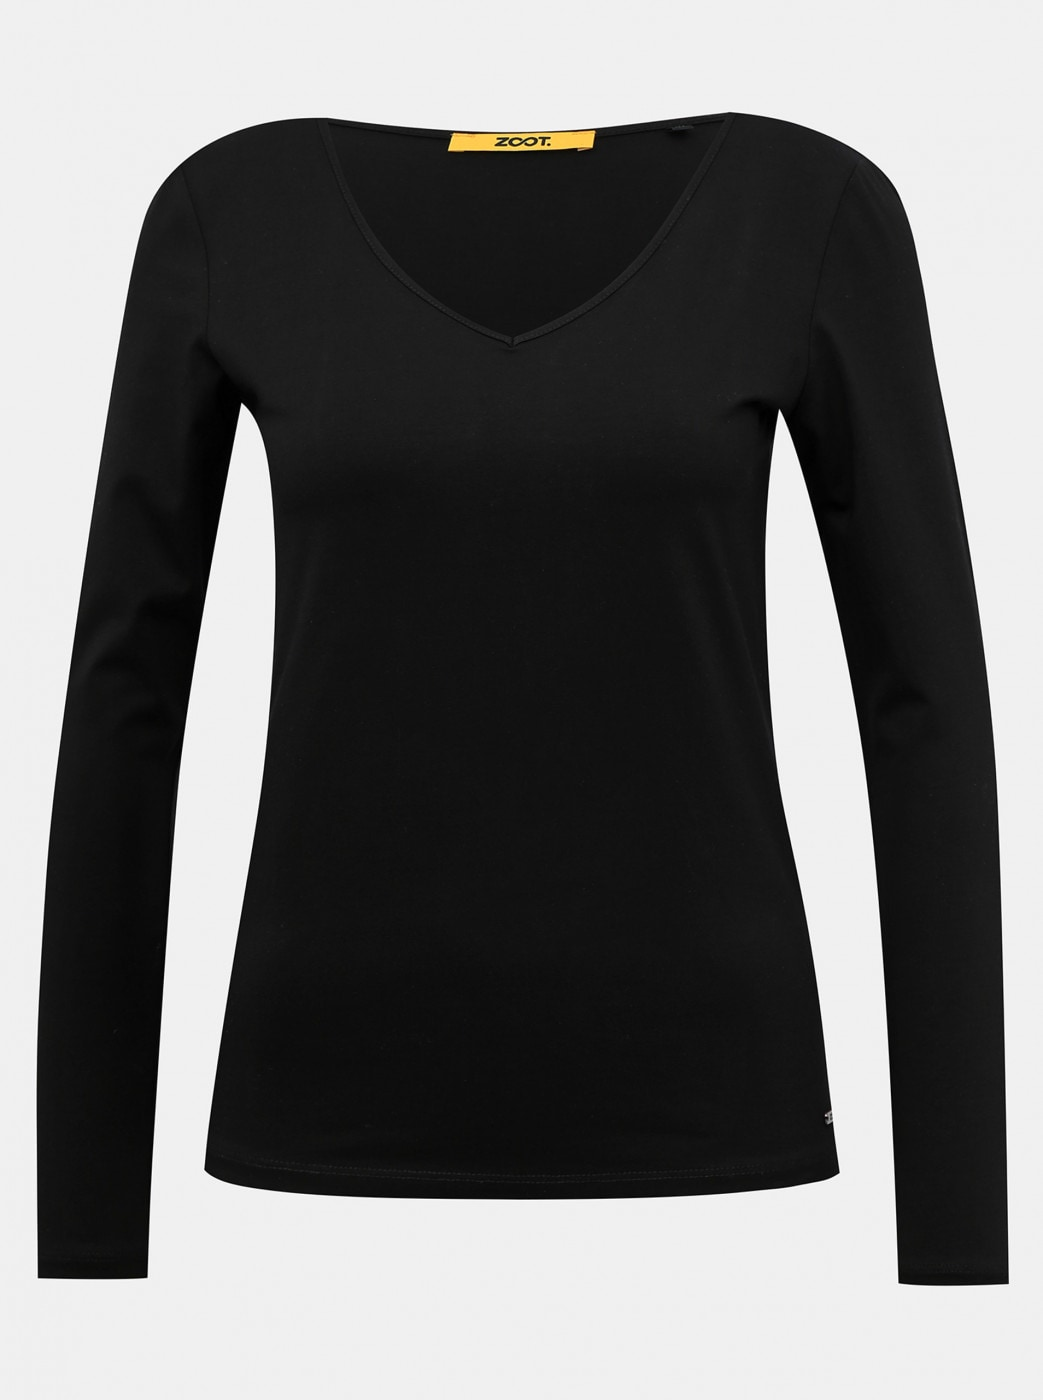 Black Women's Basic T-Shirt ZOOT Baseline Tamara